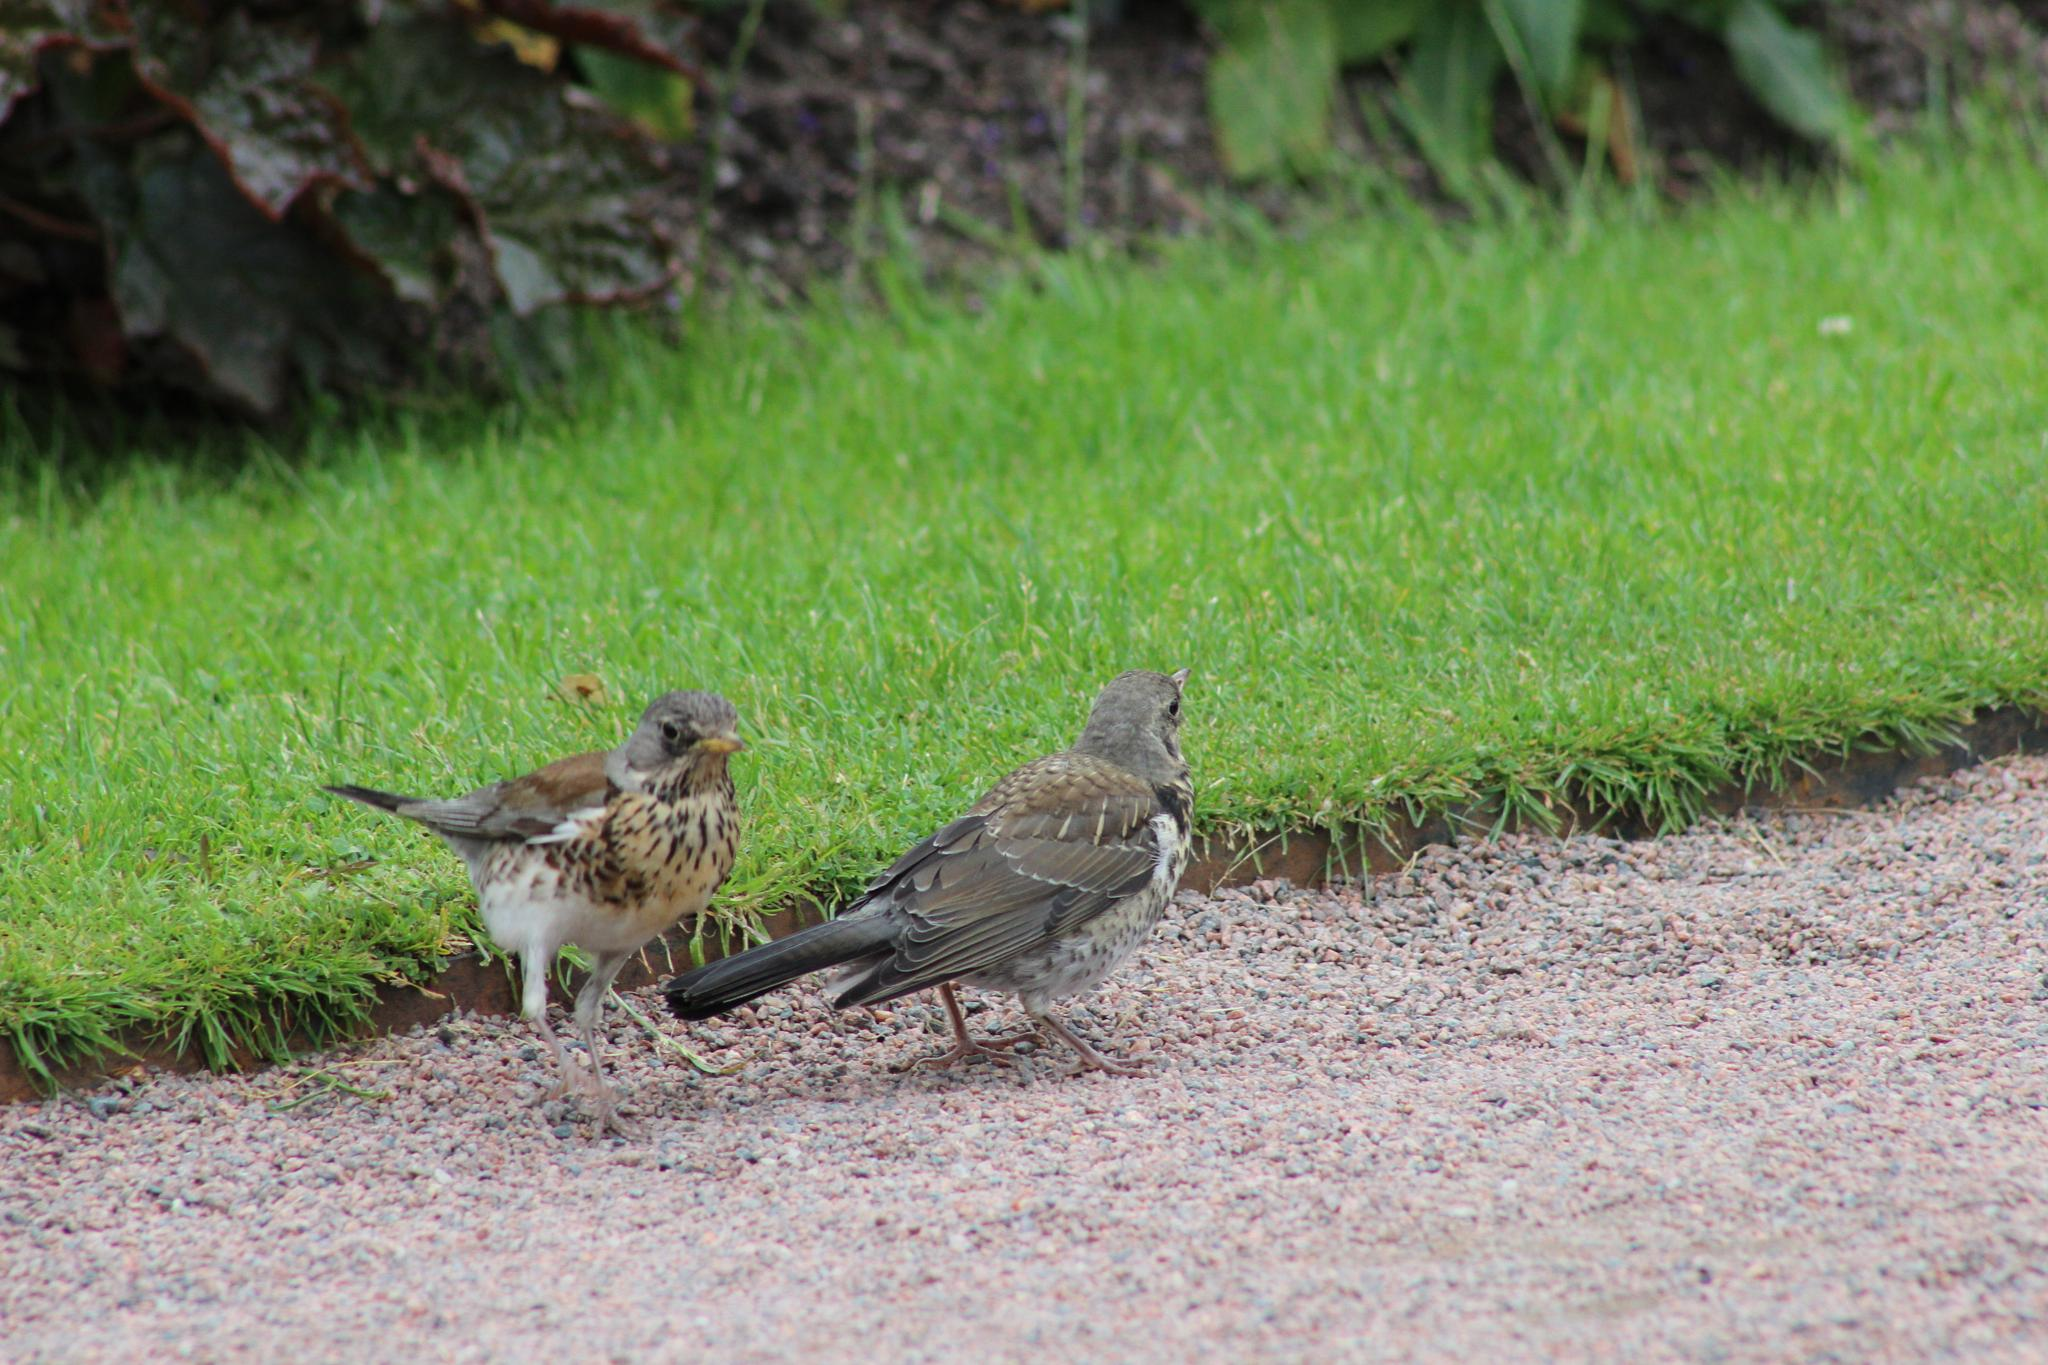 Two Fieldfares by heidi.svahn1